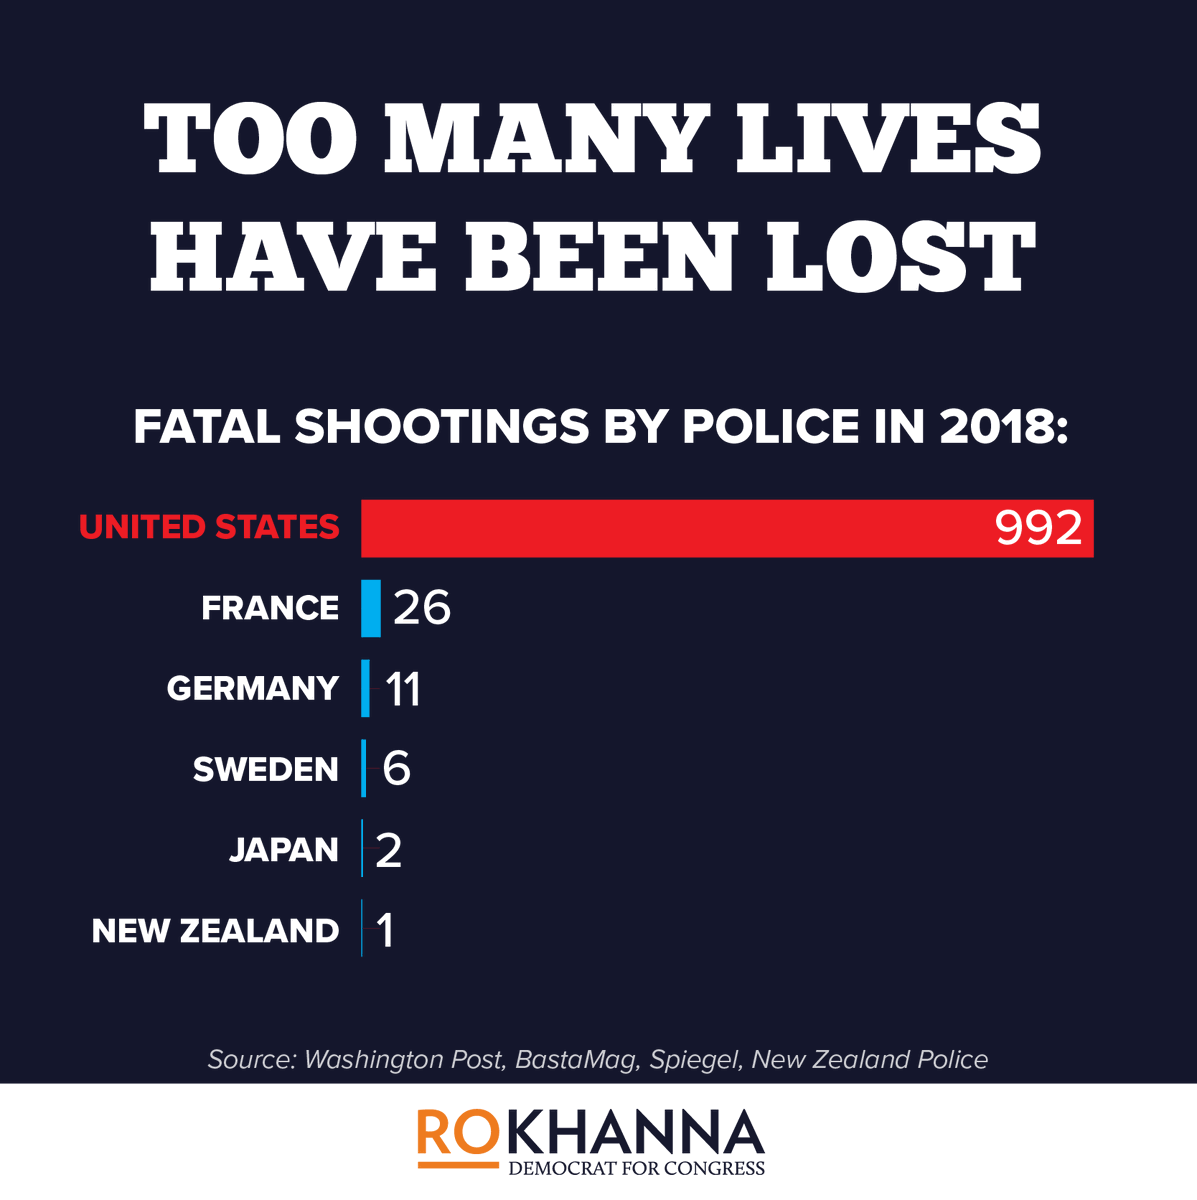 There were almost a thousand American lives lost due to police violence in 2018. I am as sick and tired of watching the inaction as you are. The PEACE Act that I introduced with @LacyClayMO1 will make sure that officers who needlessly use lethal force are held accountable.